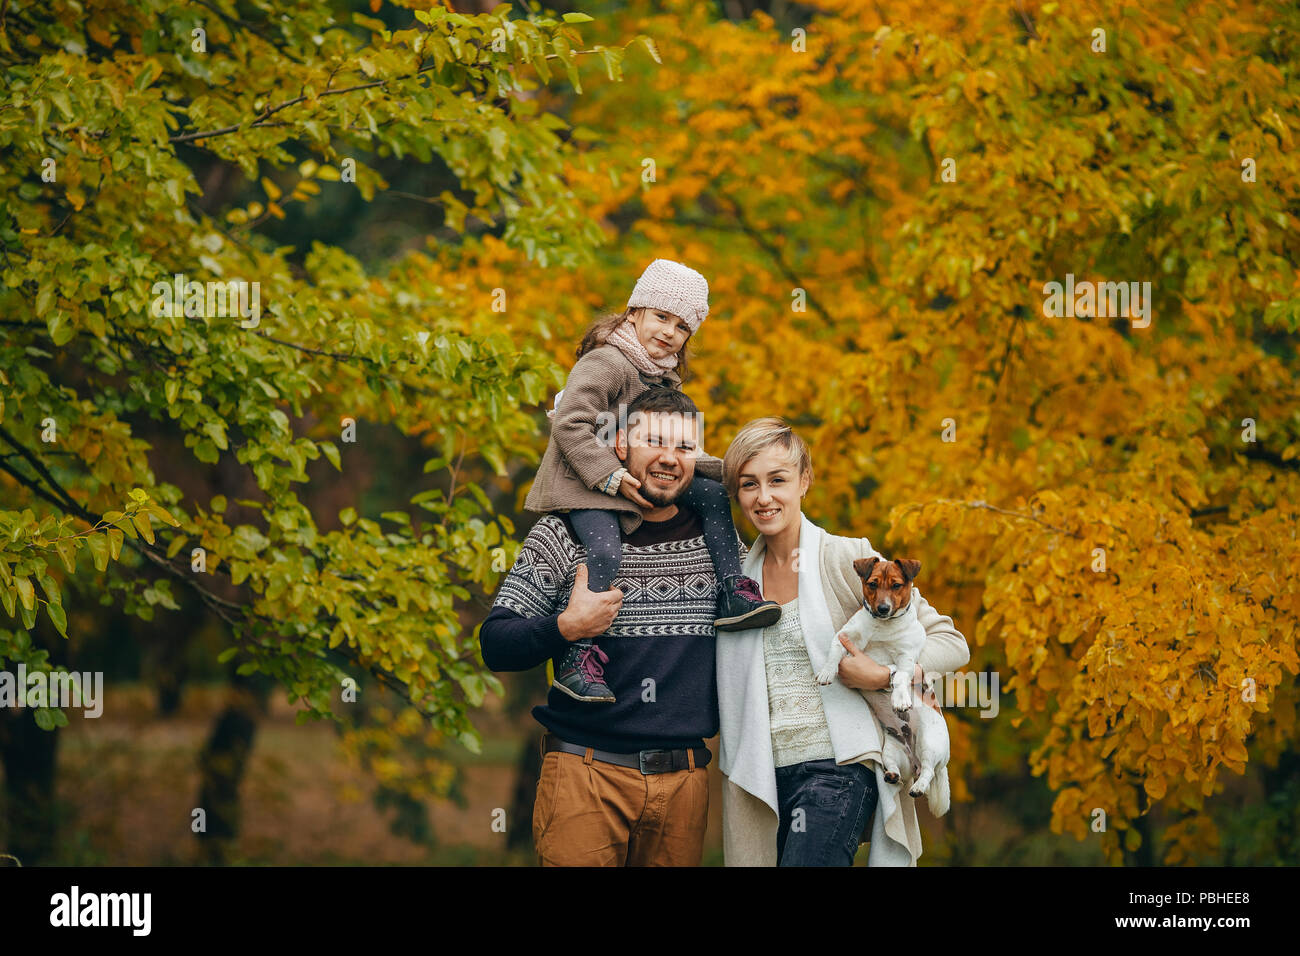 Parents with their daughter walk with dog in autumn forest. - Stock Image